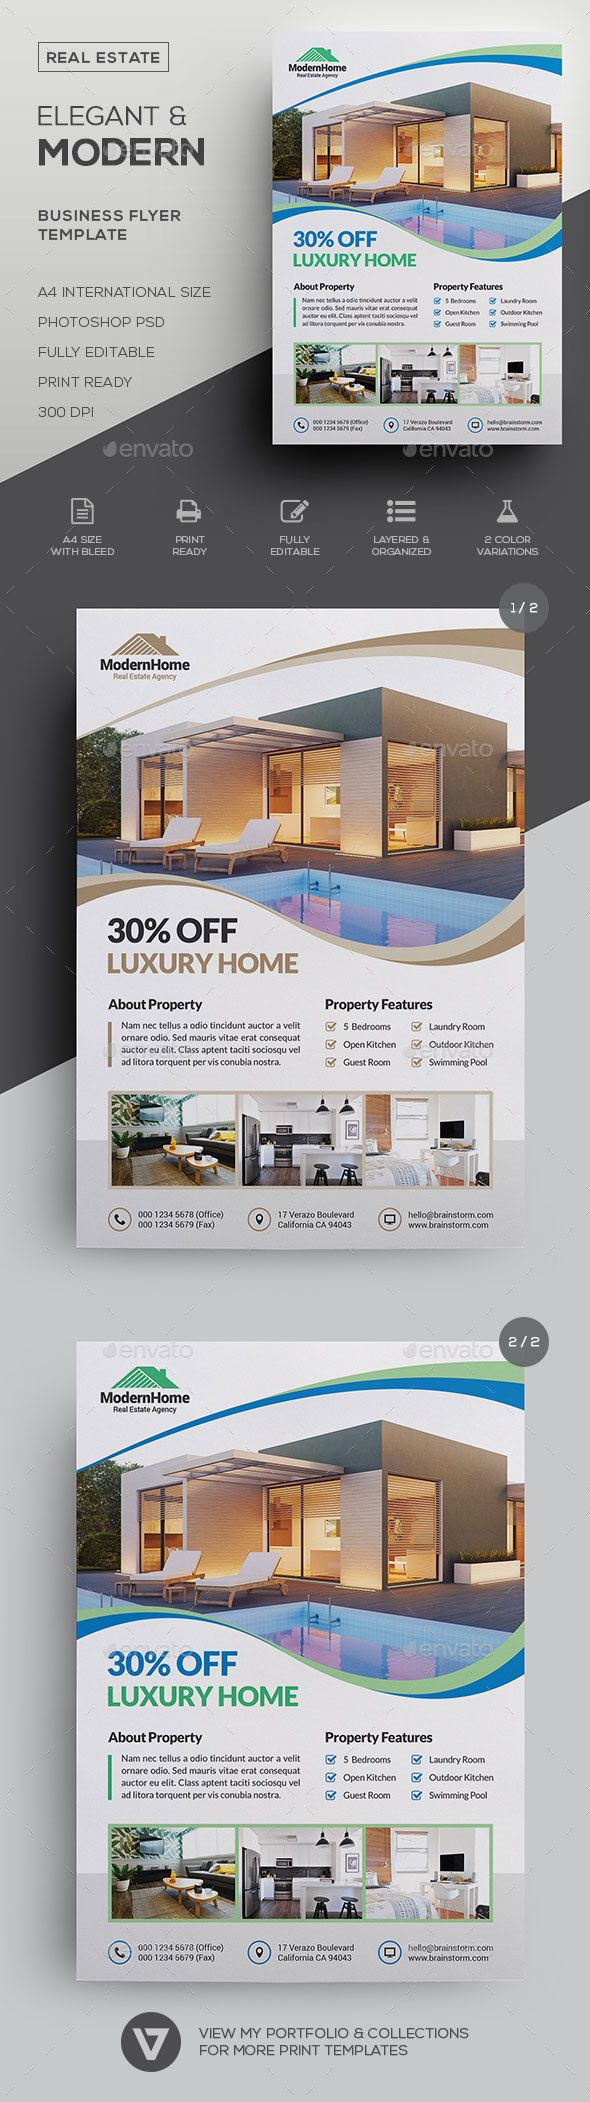 real estate flyer classy elegant modern real estate property